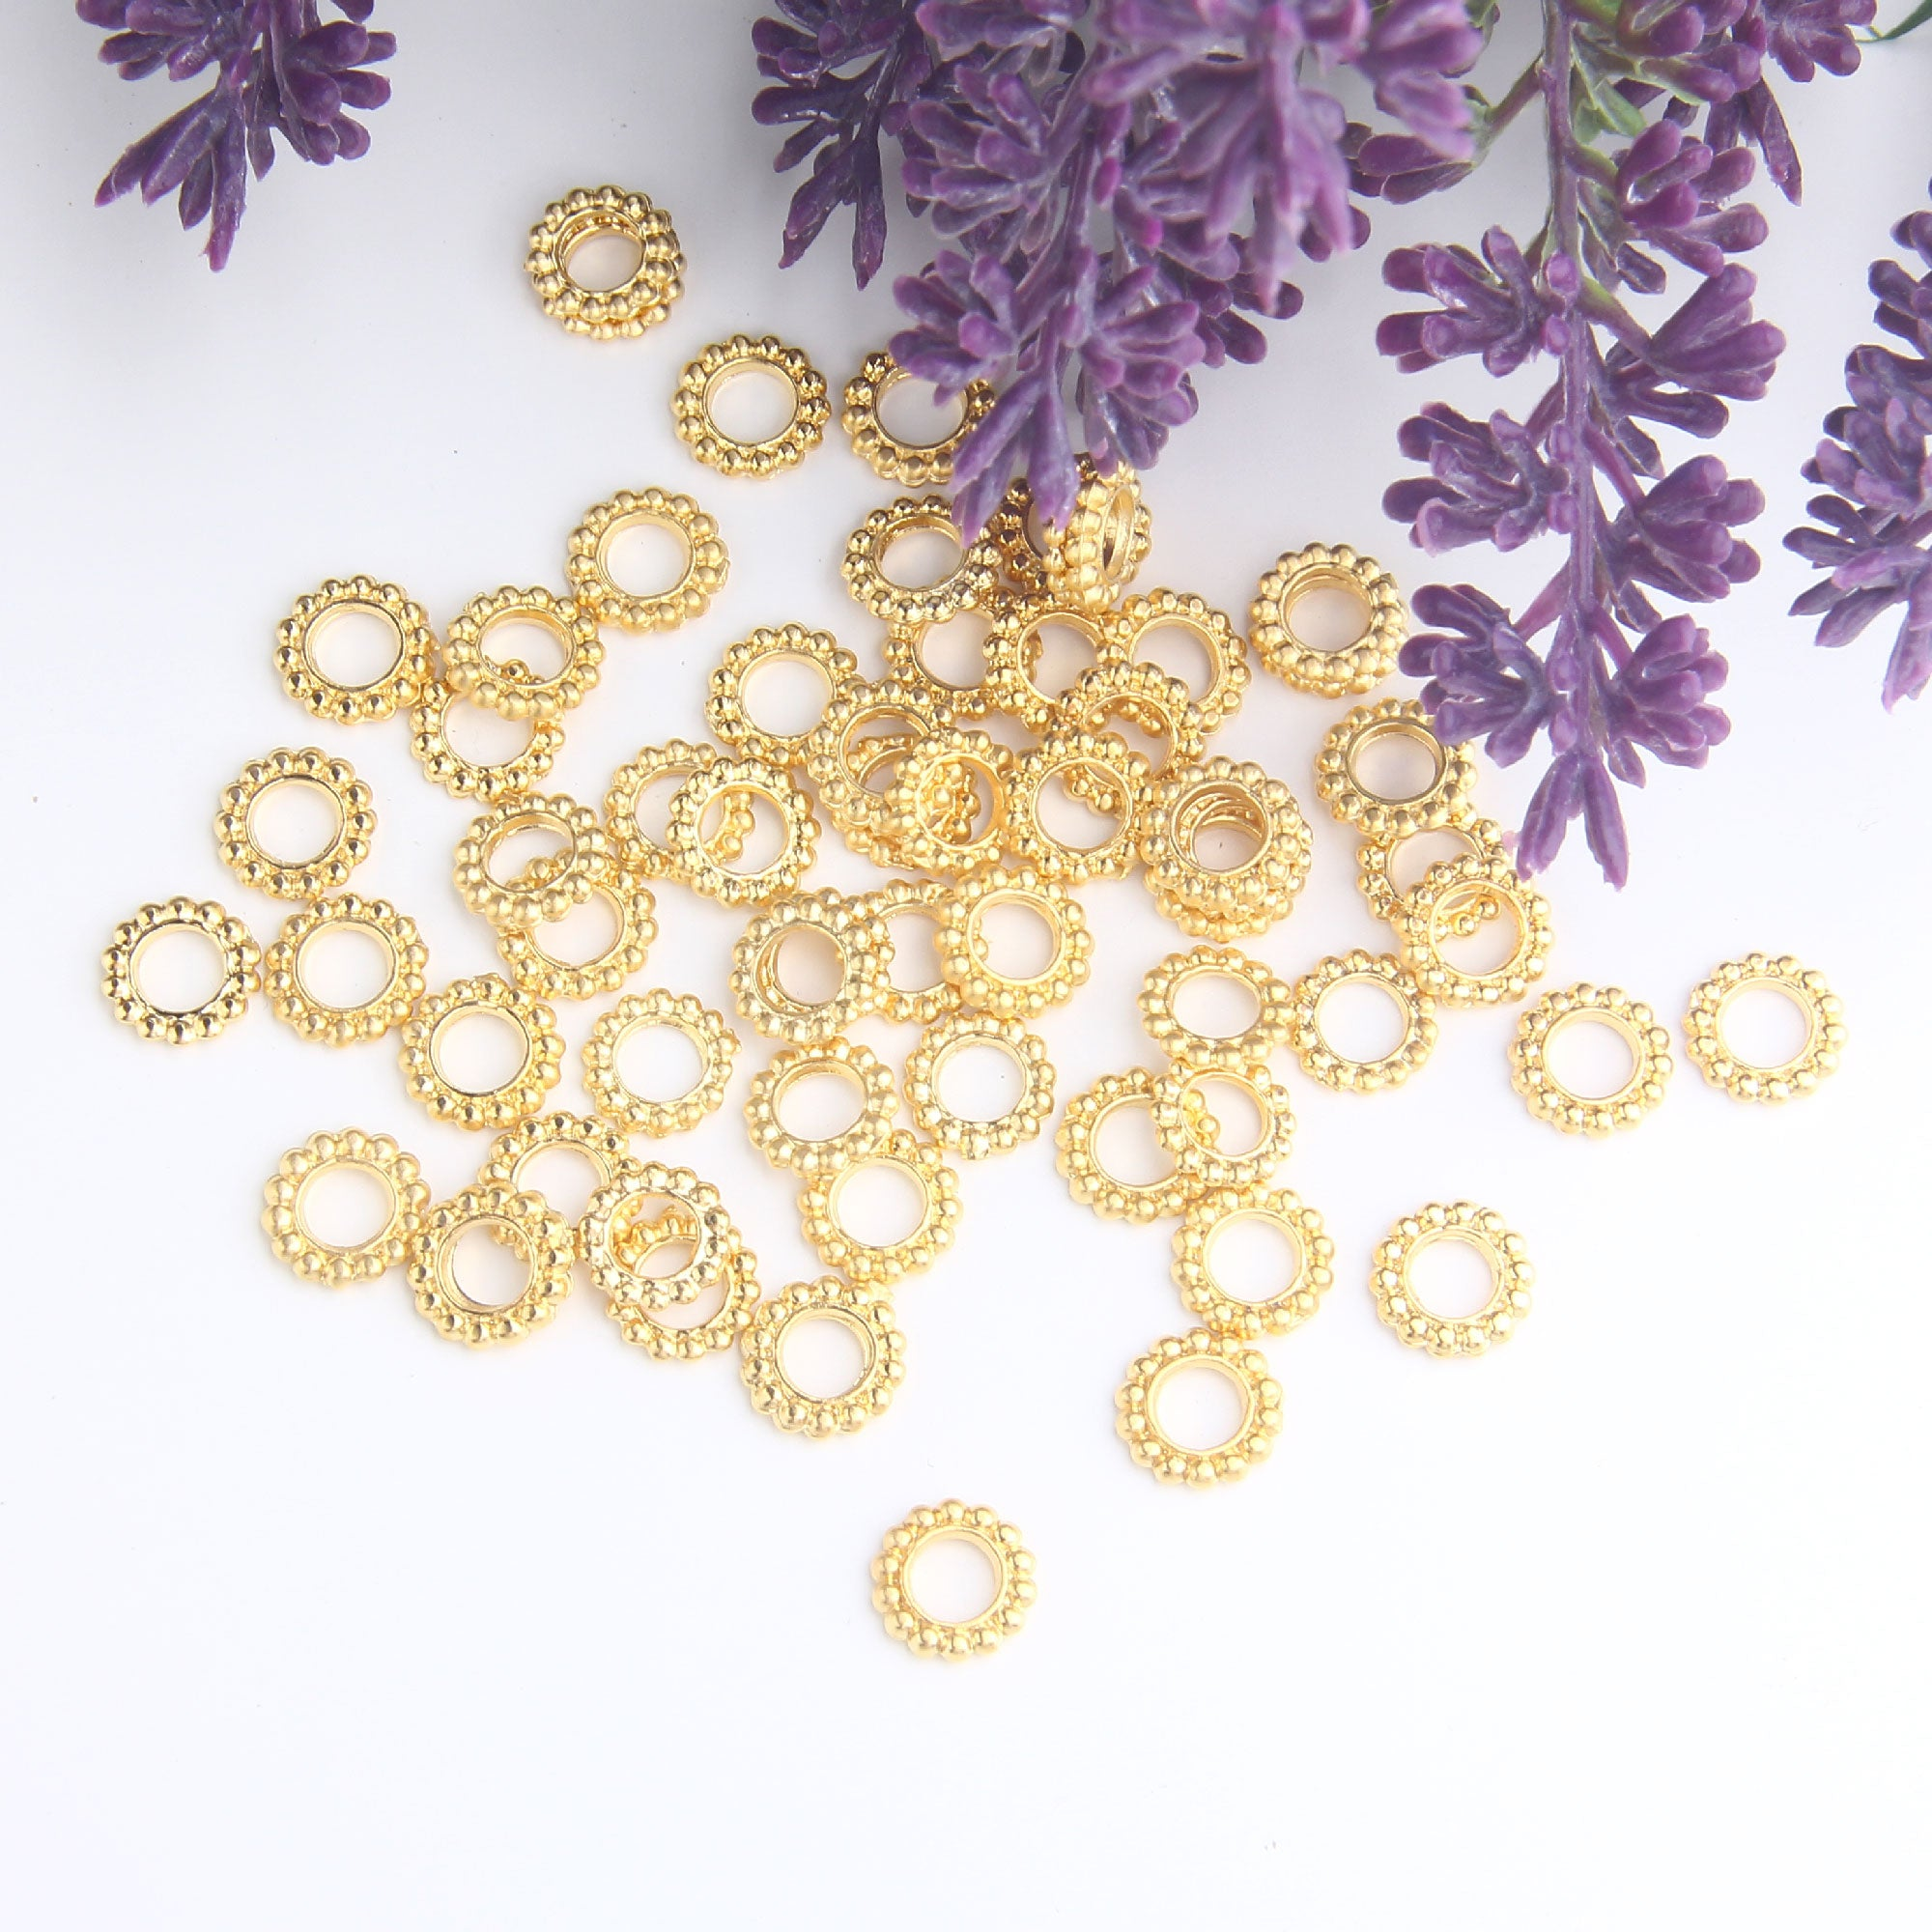 Mini Serrated Round Beads, Mini Round Spacers, 9mm Mini Flat Beads, Mini Gold Beads, 20 pieces // GB-303